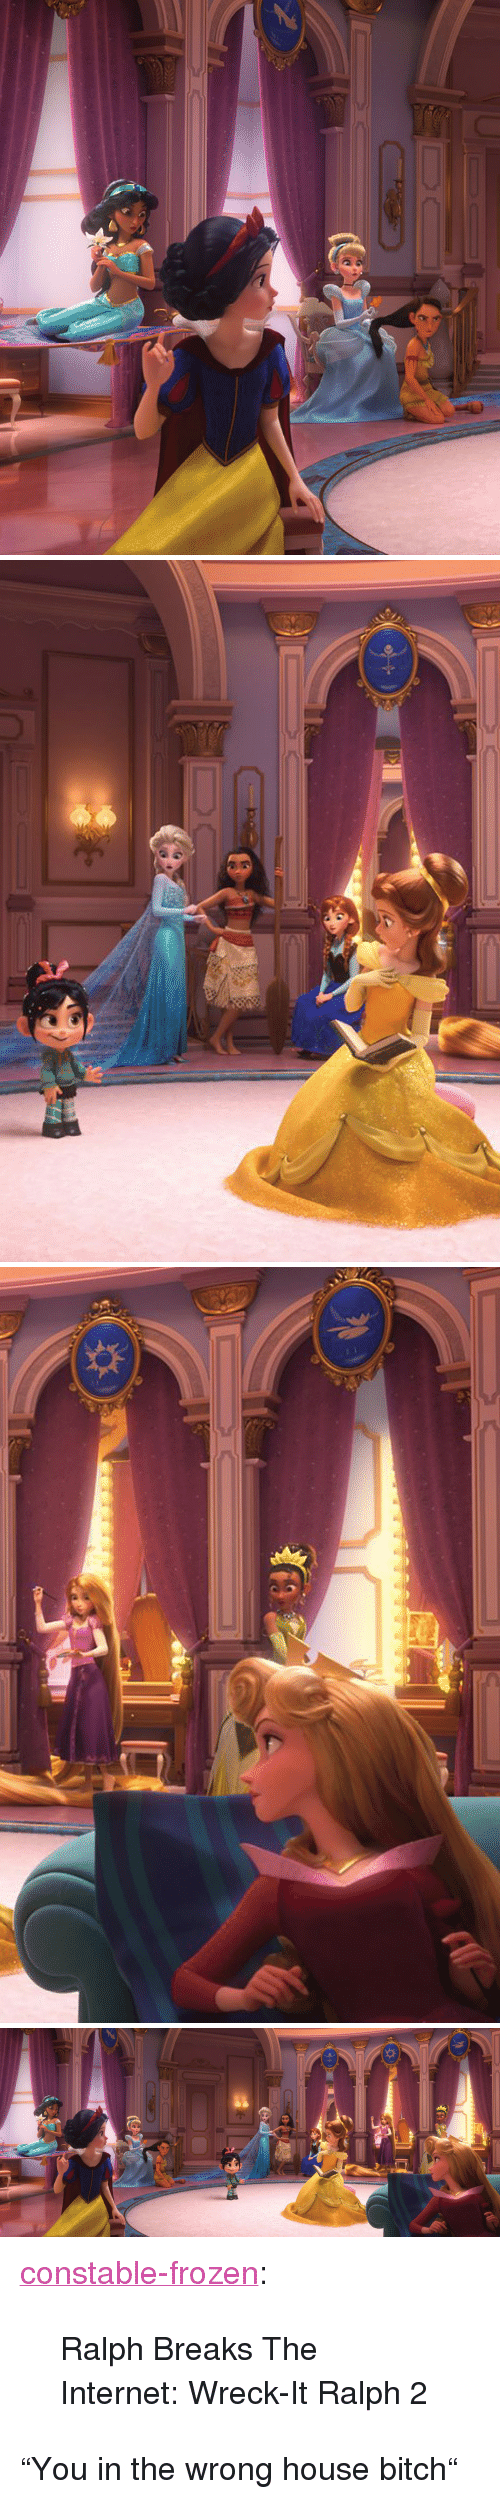 """Wreck It: <p><a href=""""https://constable-frozen.tumblr.com/post/174410635303/ralph-breaks-the-internet-wreck-it-ralph-2"""" class=""""tumblr_blog"""">constable-frozen</a>:</p>  <blockquote><p>Ralph Breaks The Internet: Wreck-It Ralph 2</p></blockquote>  <p>""""You in the wrong house bitch""""</p>"""